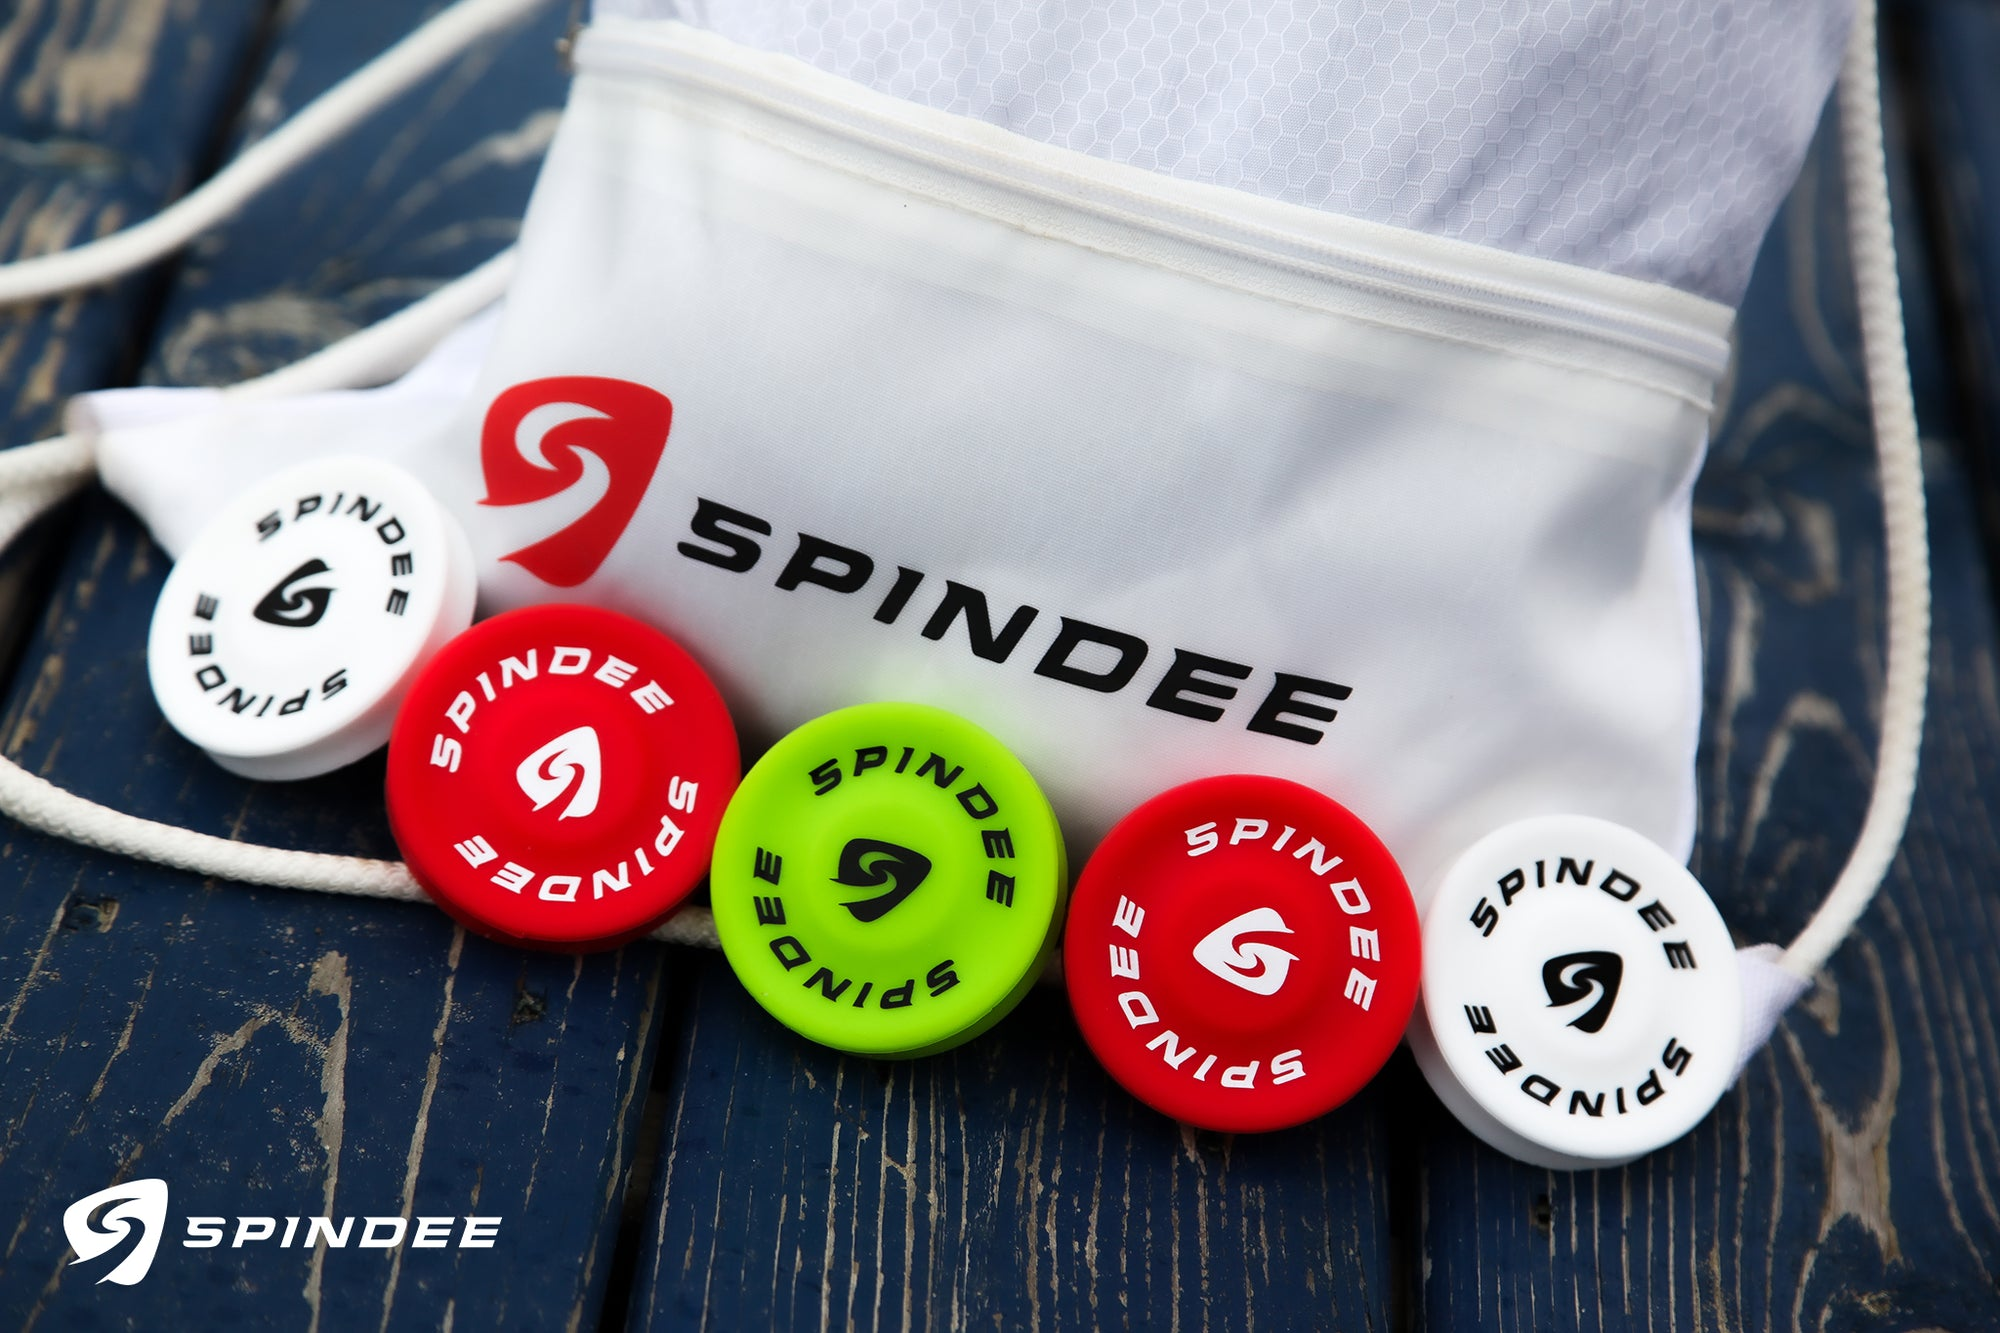 Bring Life To Your Days With Spindee!